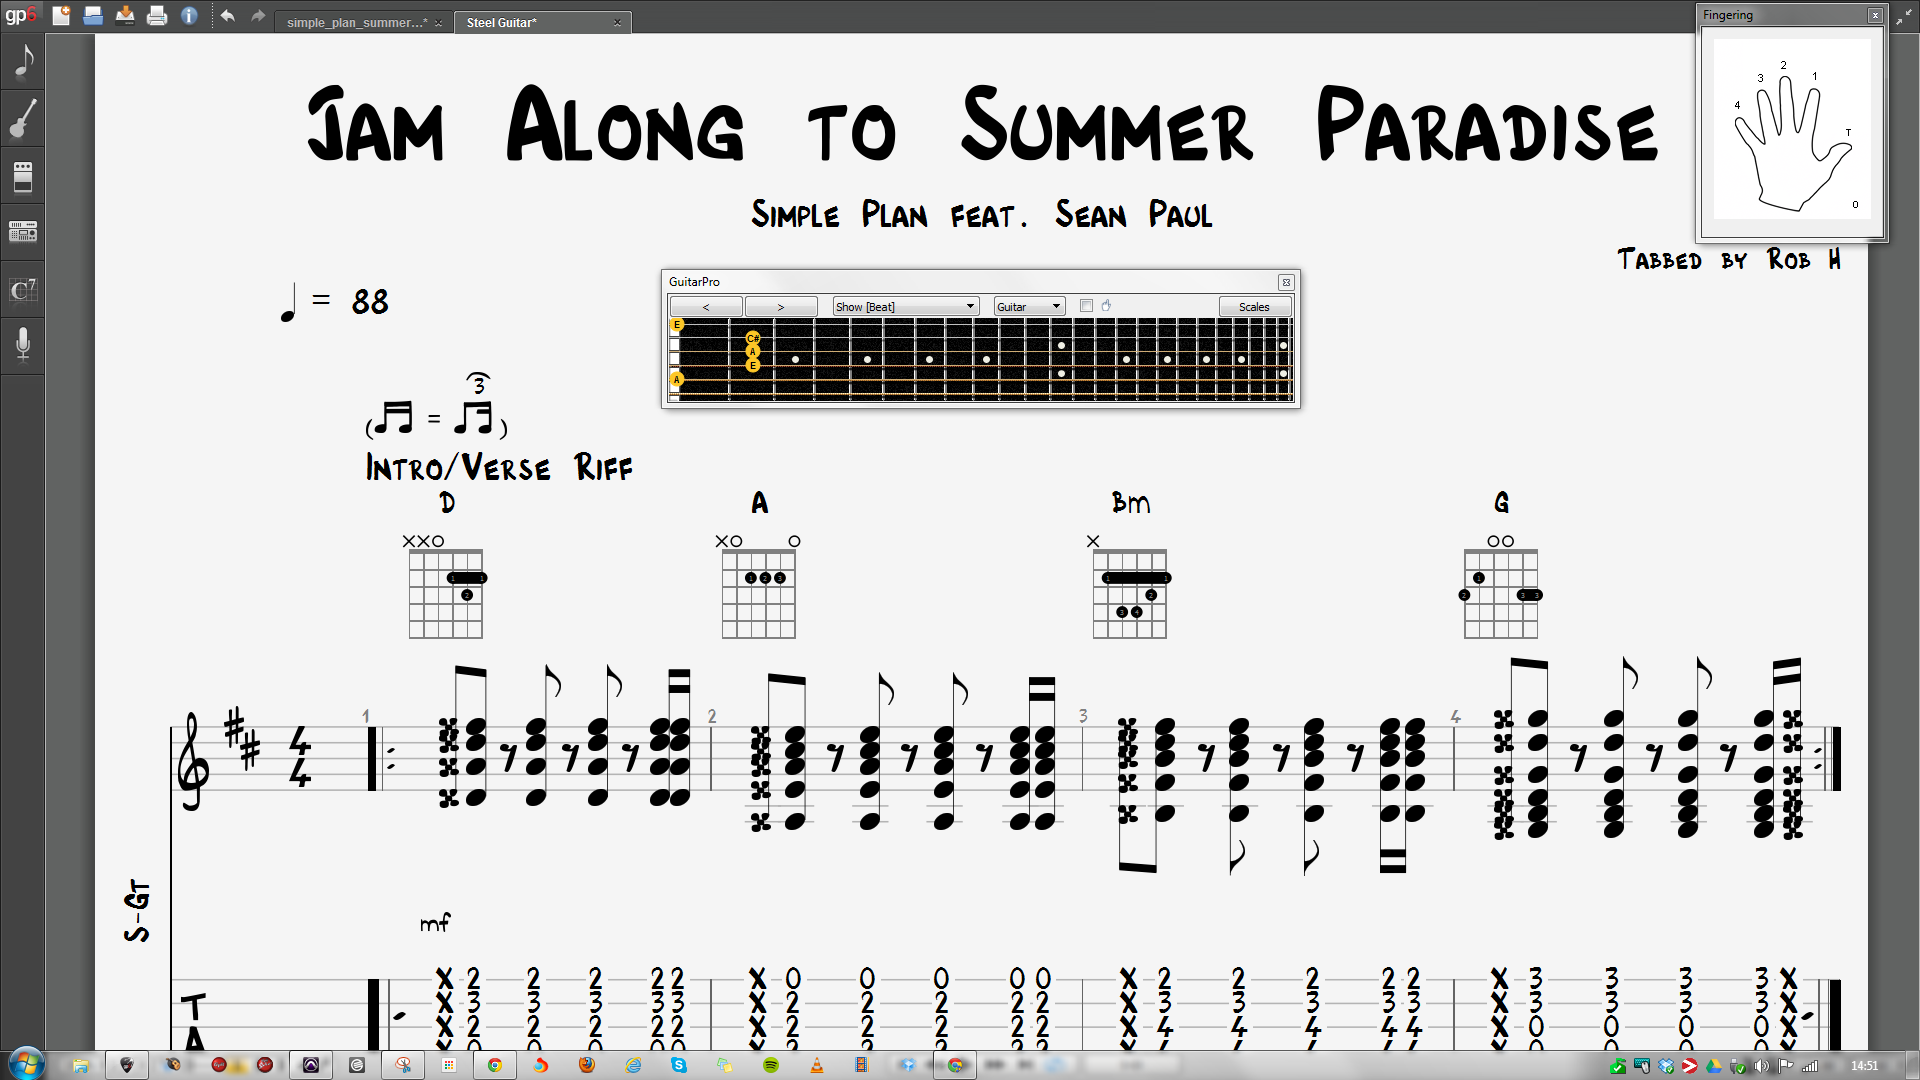 Simple plan jam along rock salt licks jam along to summer paradise simple plan give us simple chords to have a great hexwebz Choice Image